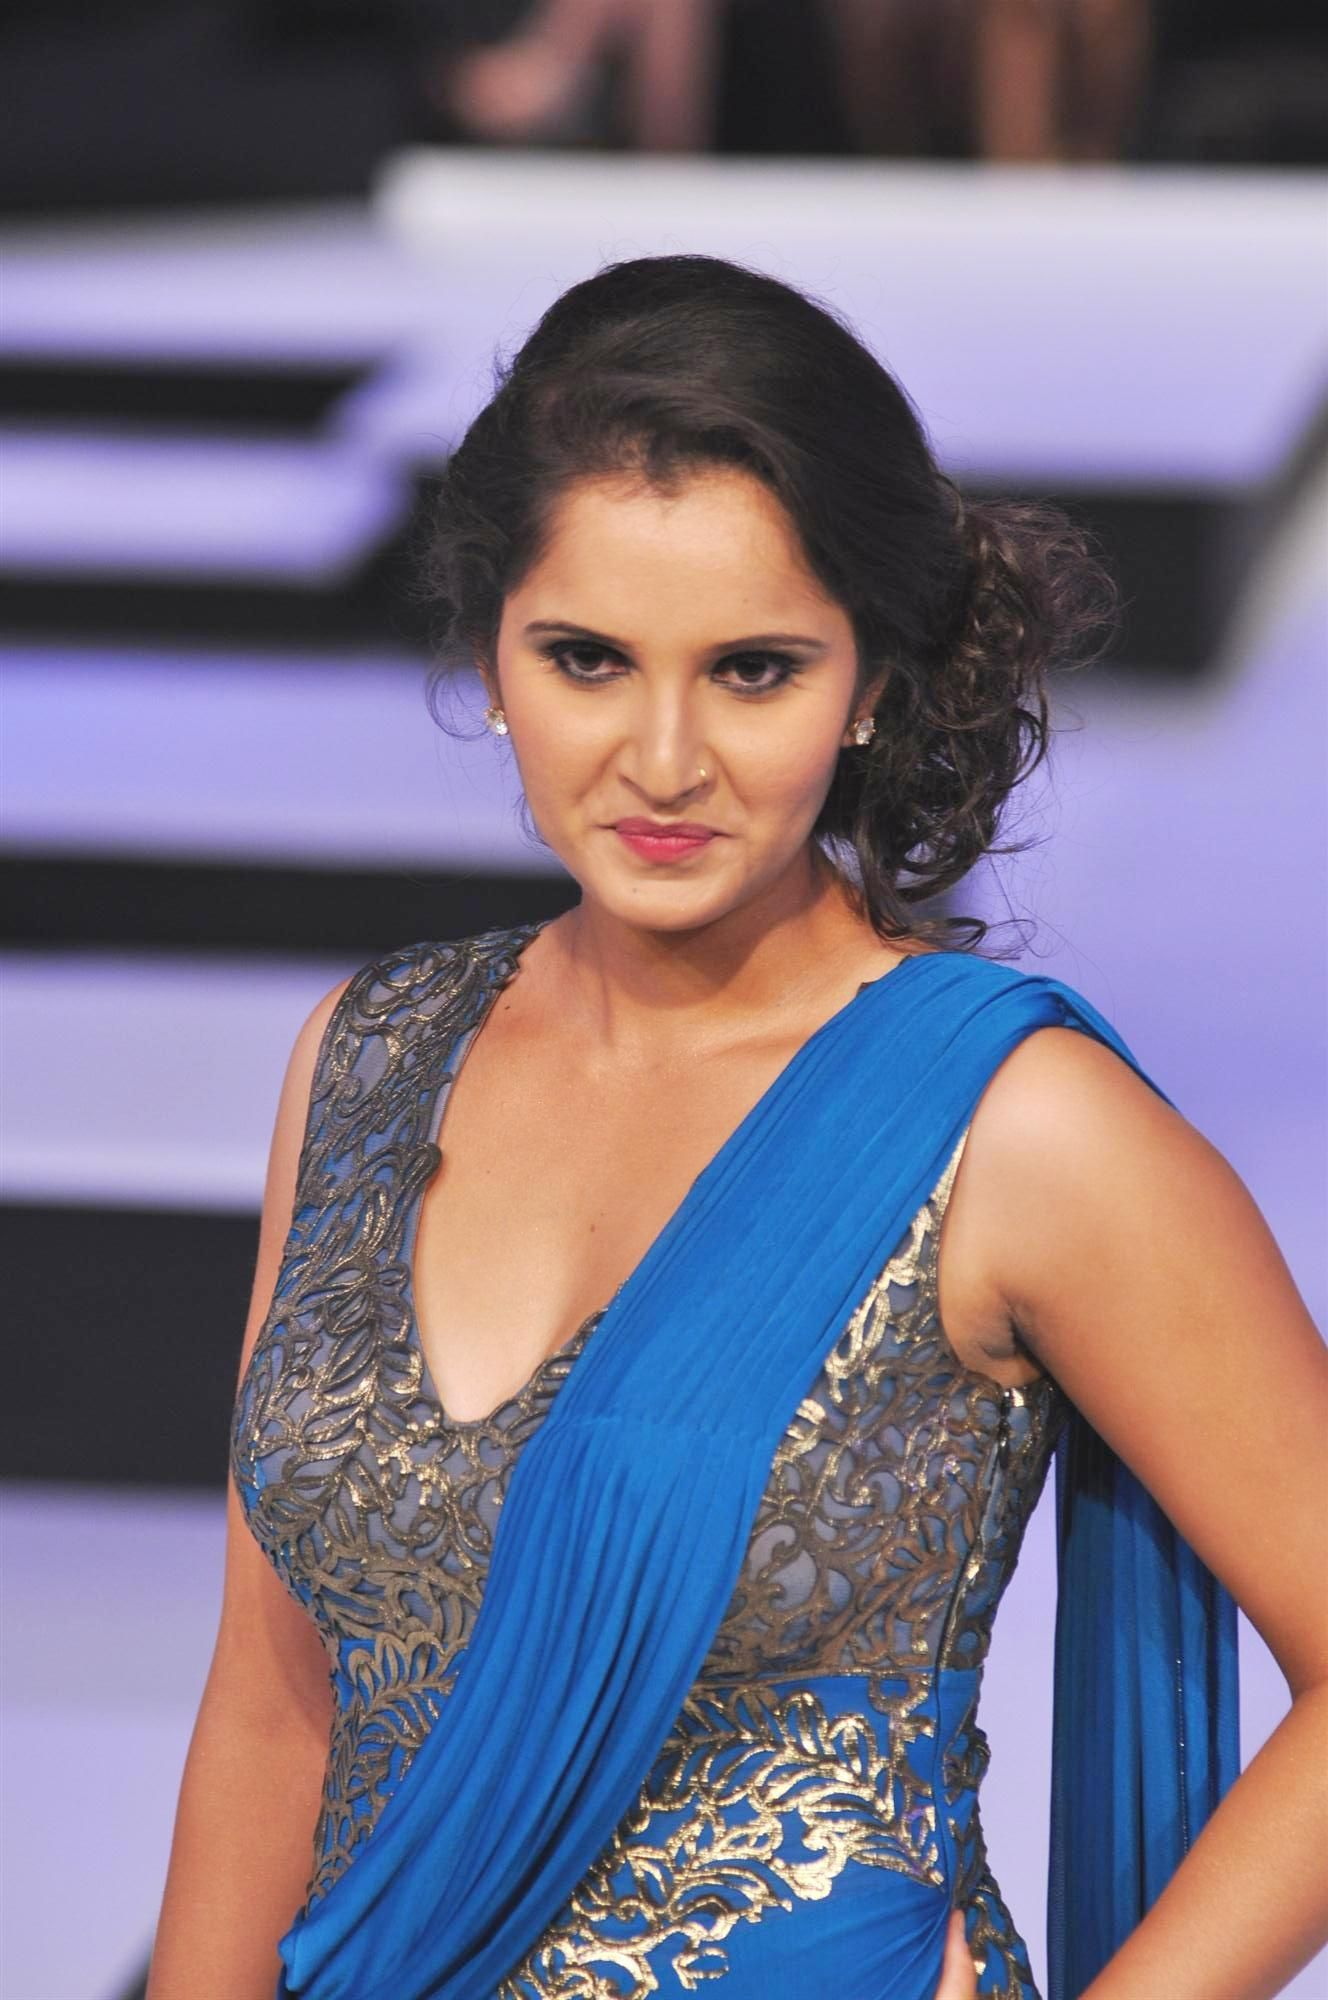 lawn tennis player sania mirza is a world famous indian tennis